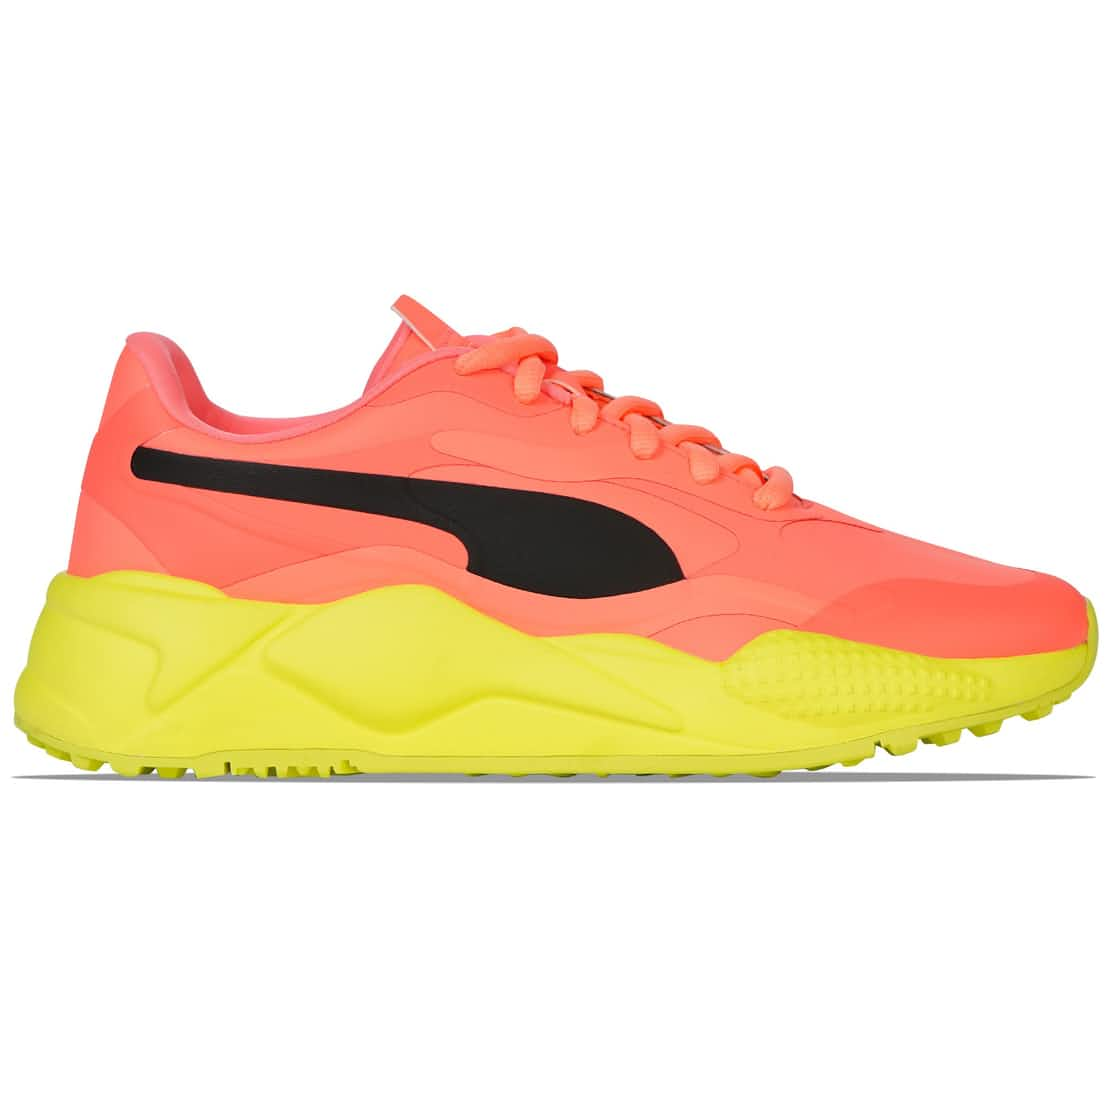 RS-G Rise Up Fizzy Yellow/Nrgy Peach/Black - AW20